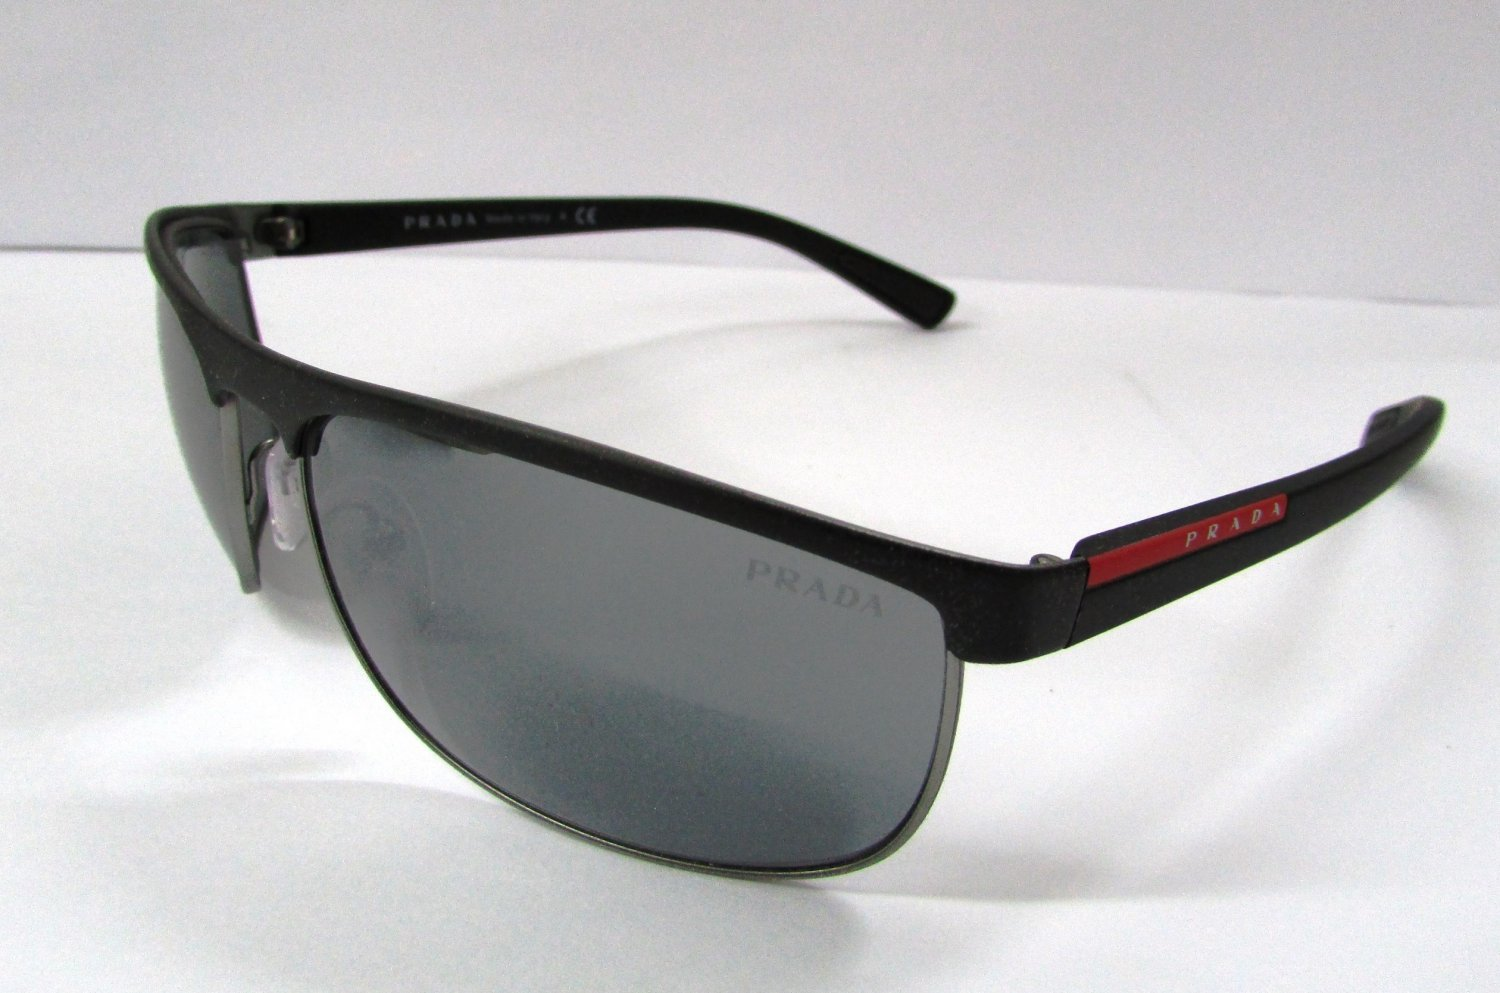 Prada Sport Sunglasses 54QS DG07W1 Black Gunmetal 100% New & Original